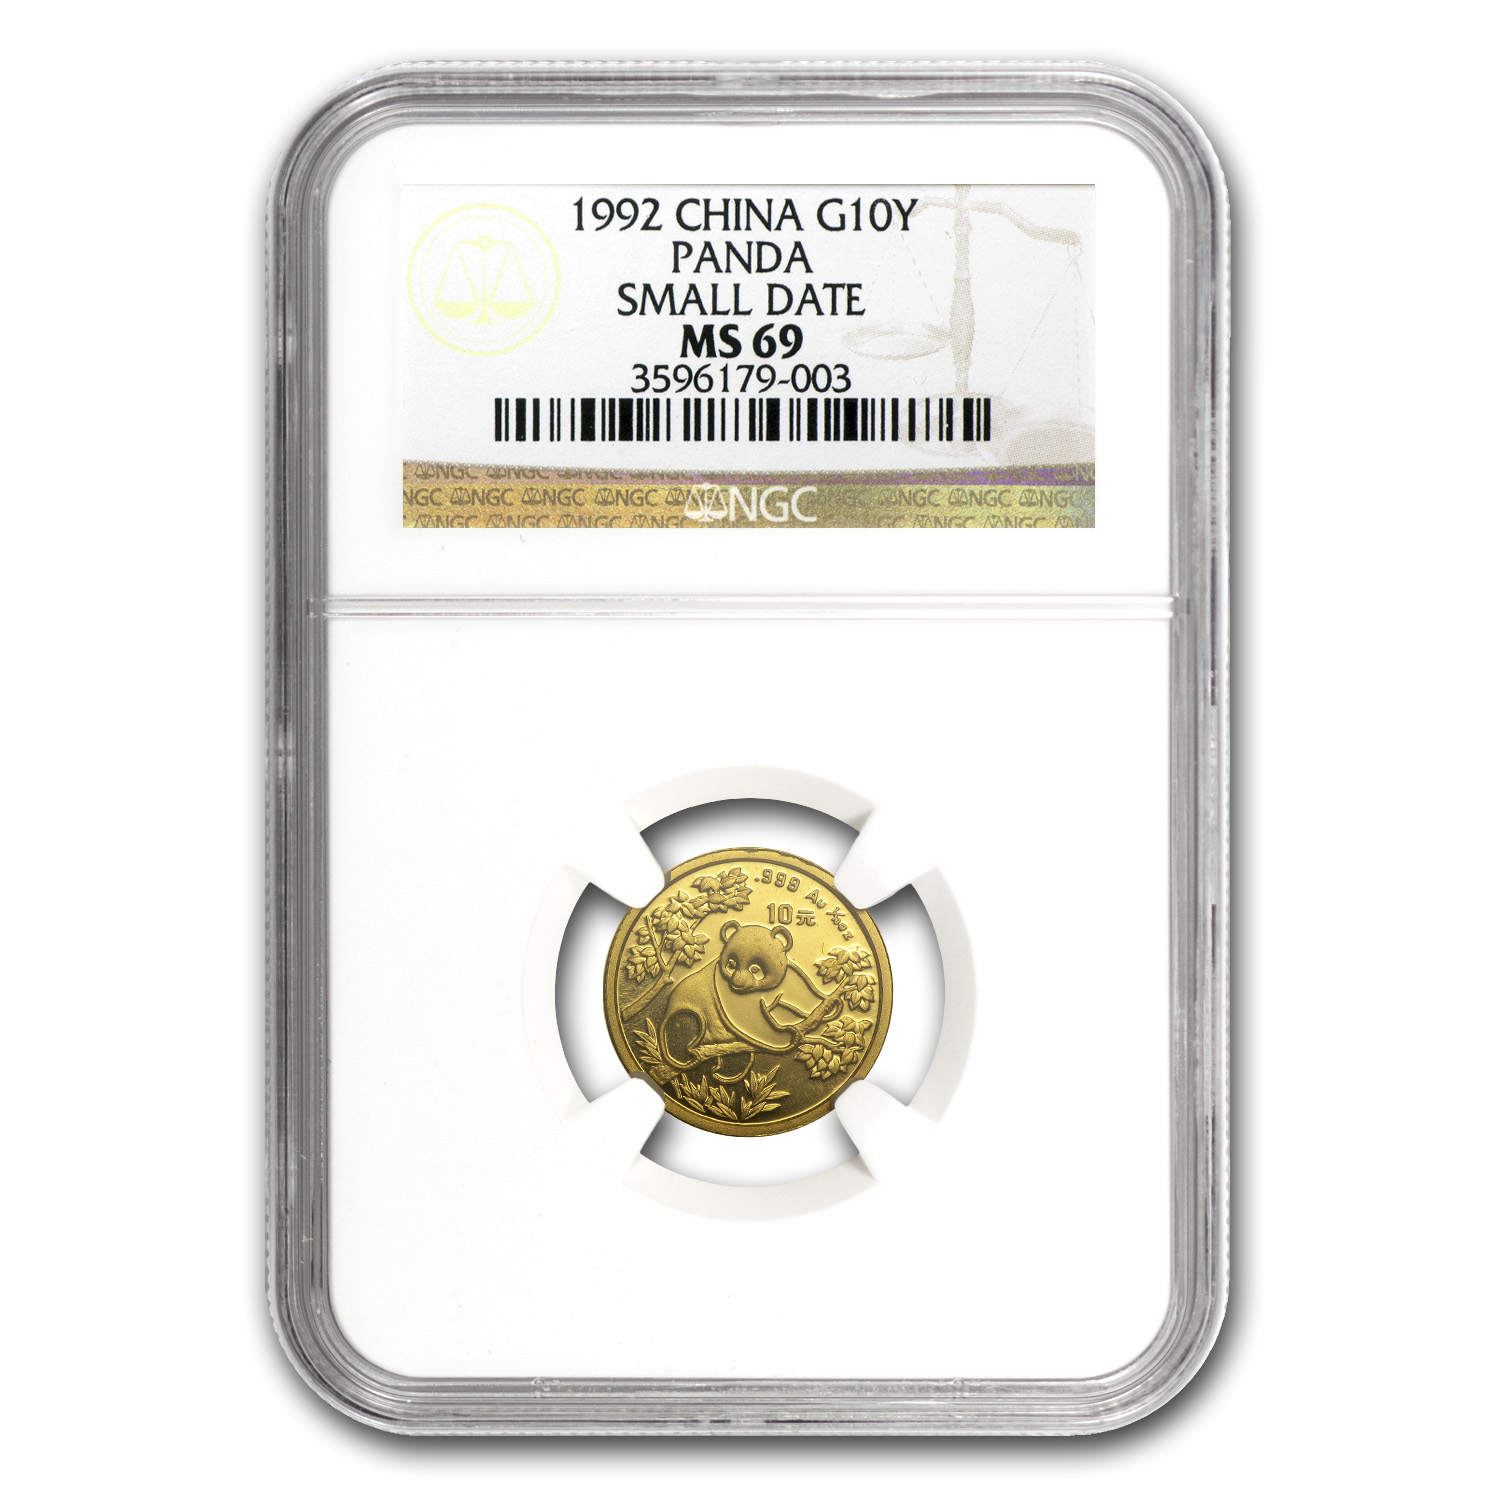 1992 1/10 oz Gold Chinese Panda Small Date MS-69 NGC